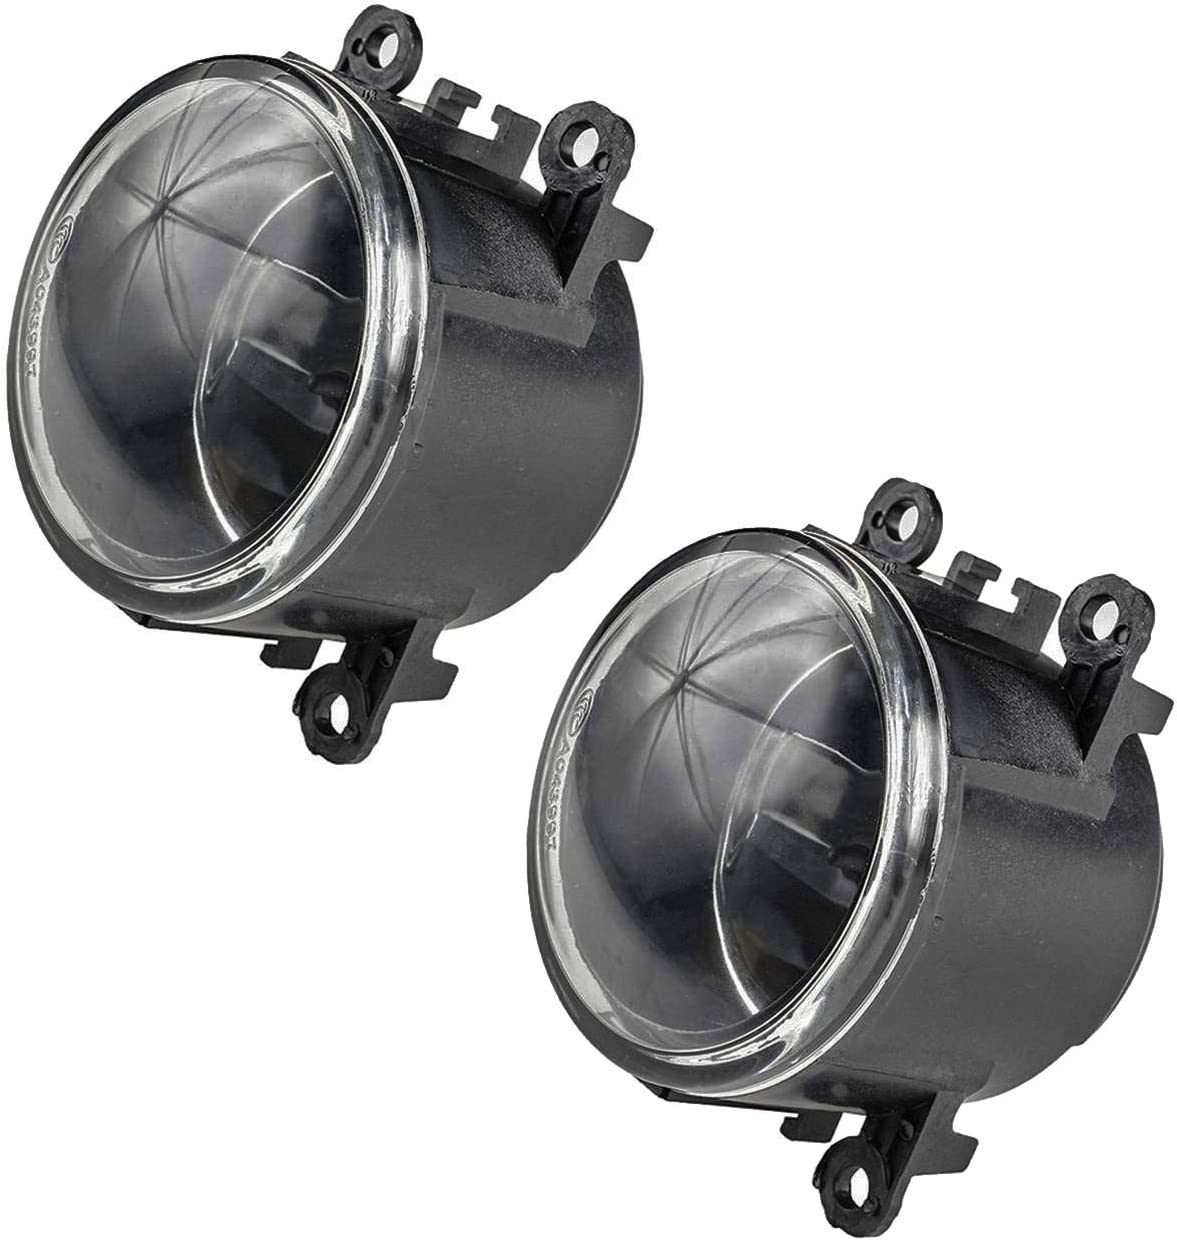 Right Fog Light Lamp 55W w// H11 Bulb for Acura Nissan Ford Honda Lincoln Bapmic 4F9Z15200AA Front Left Pack of 2